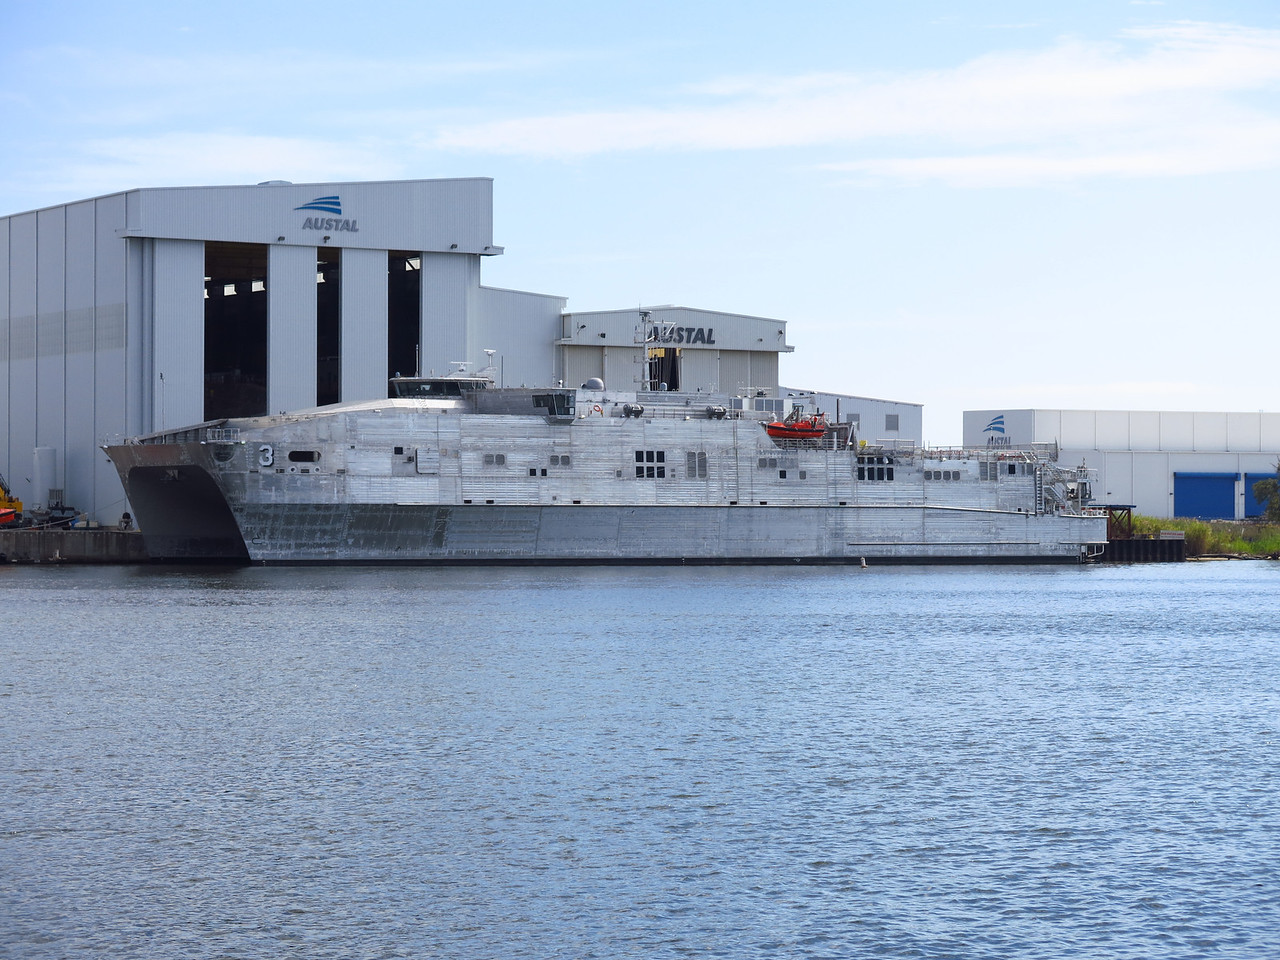 Catamaran stealth ship